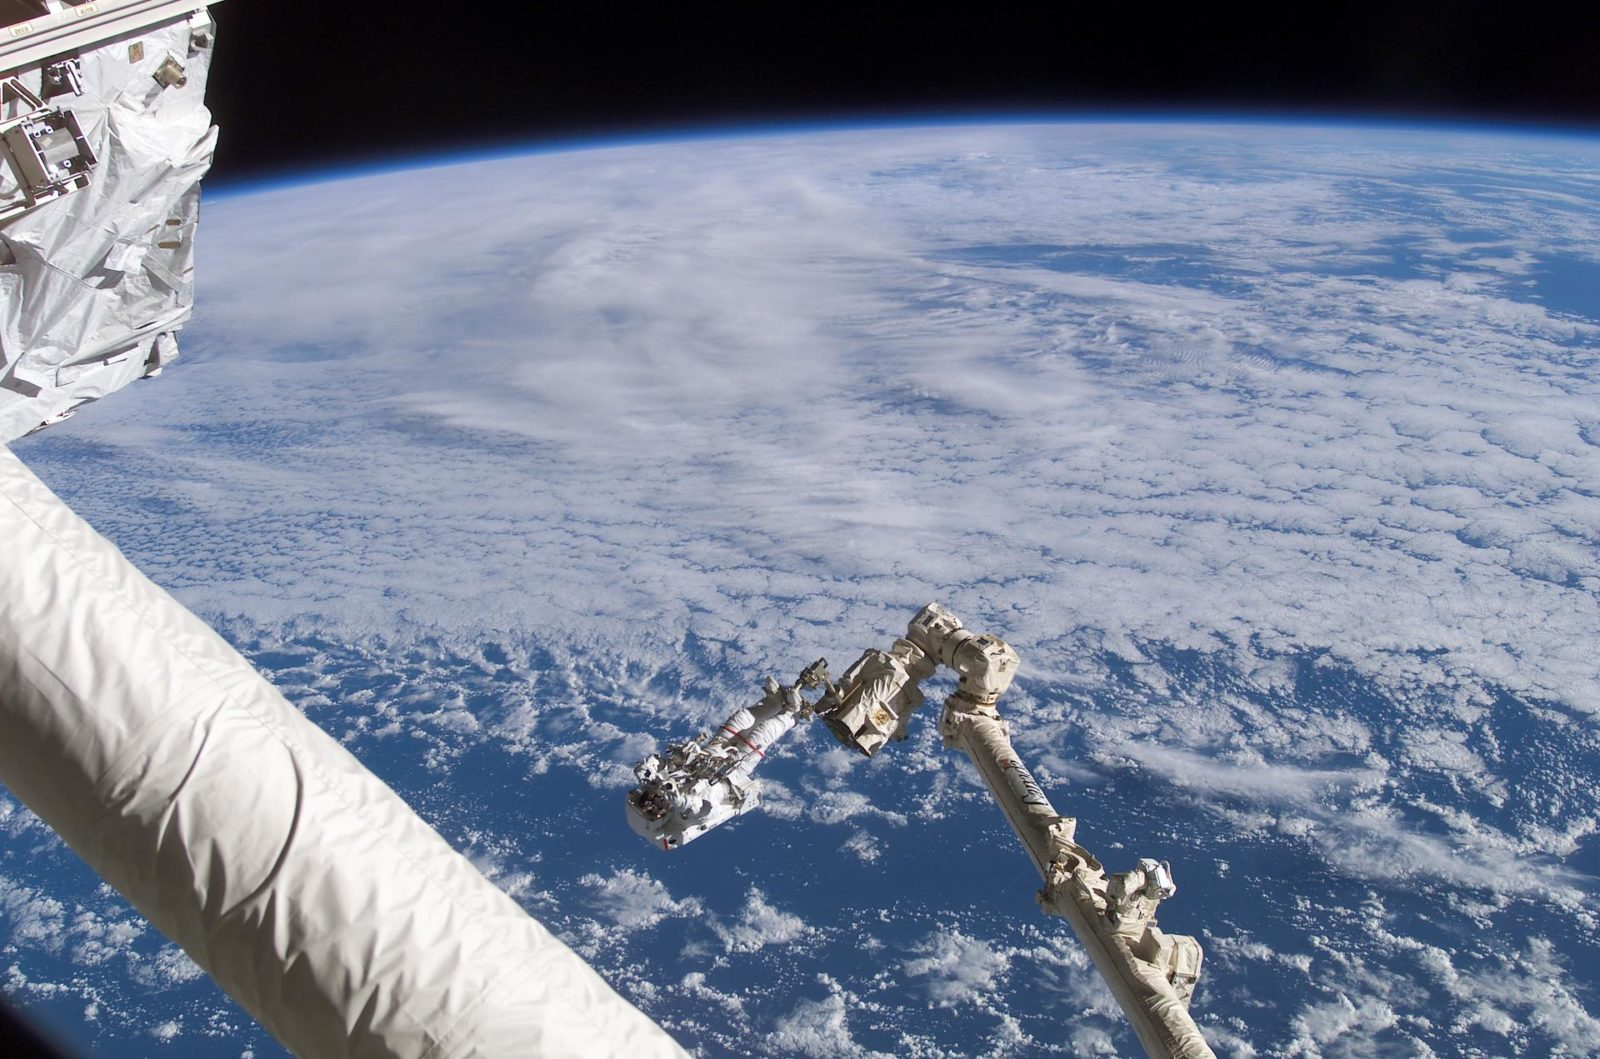 Chang-Diaz on the Canadarm2 SSRMS backdropped against Earth limb during  STS-111 UF-2 EVA 1